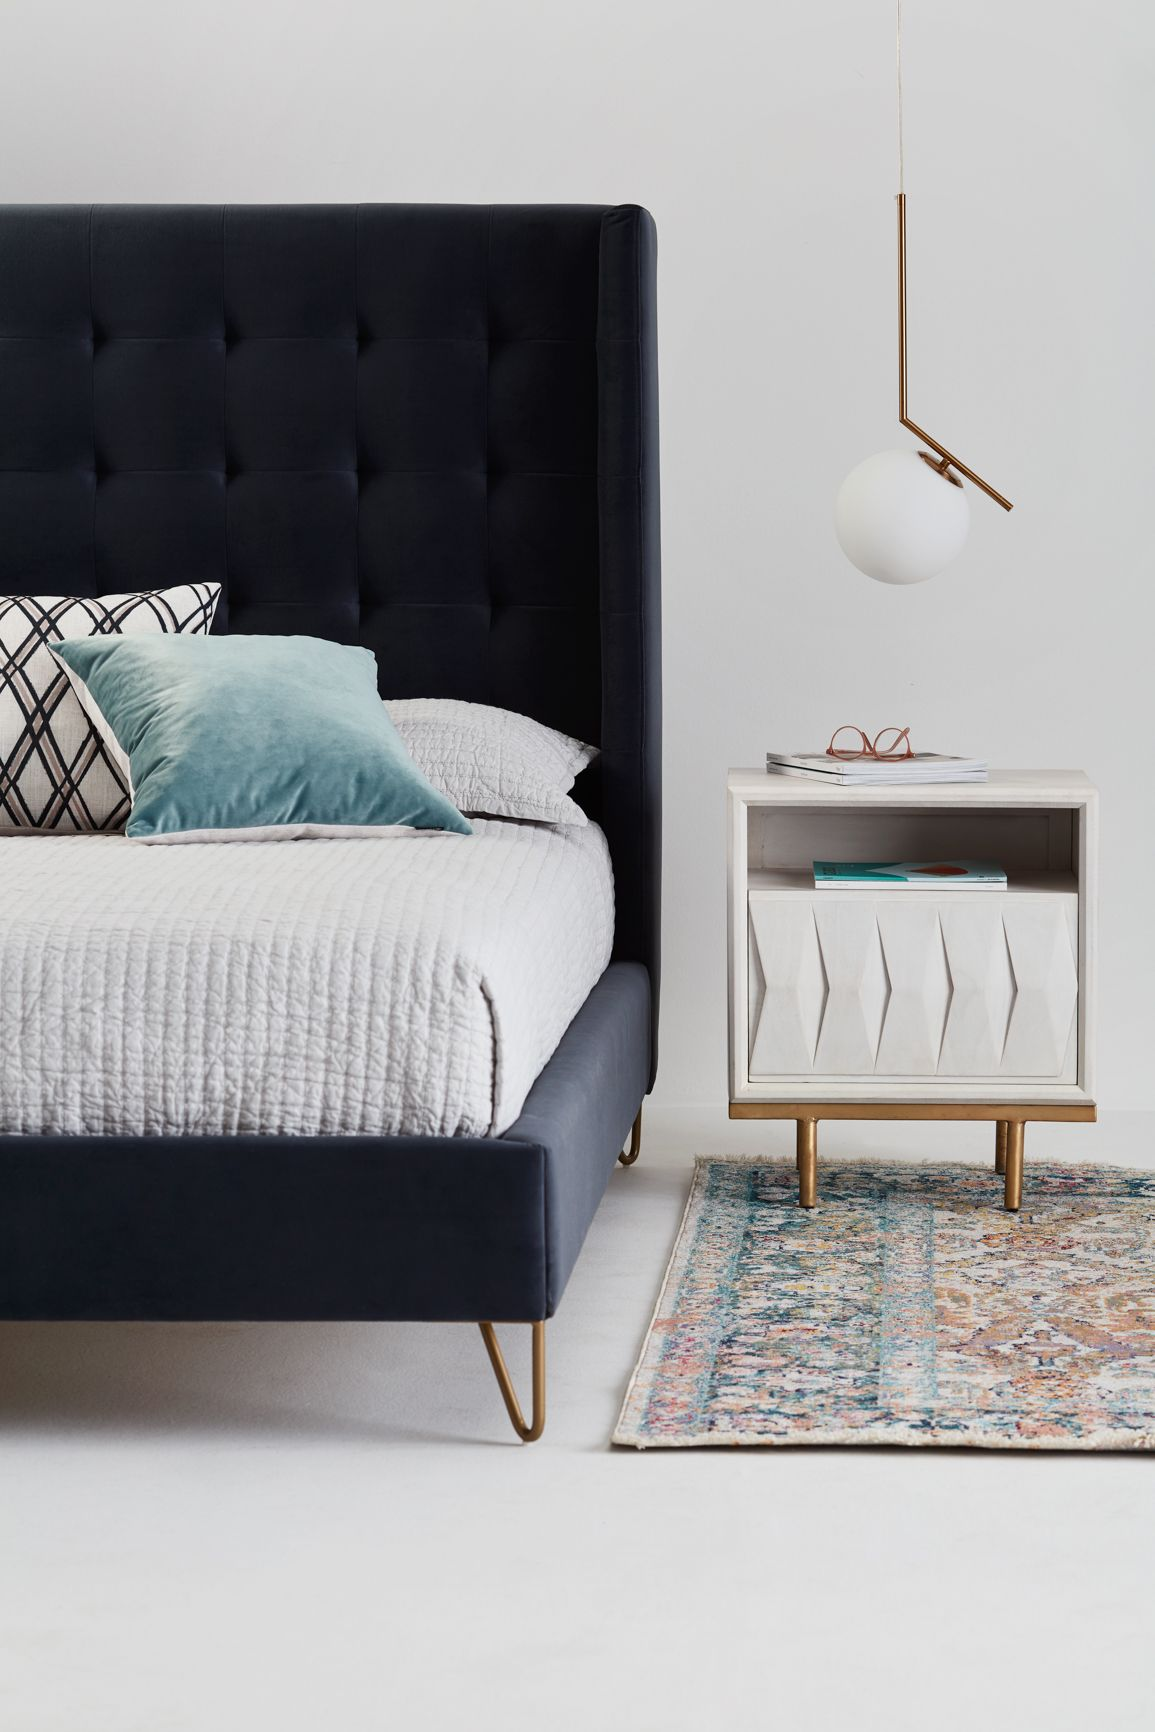 Merveilleux SANSA | Mobilia | Thanks To Its Large Upholstered Headboard The Sansa Queen  Size Bed Is Perfect For Reading. Go Ahead And Take A Few Minutes To Relax  And ...